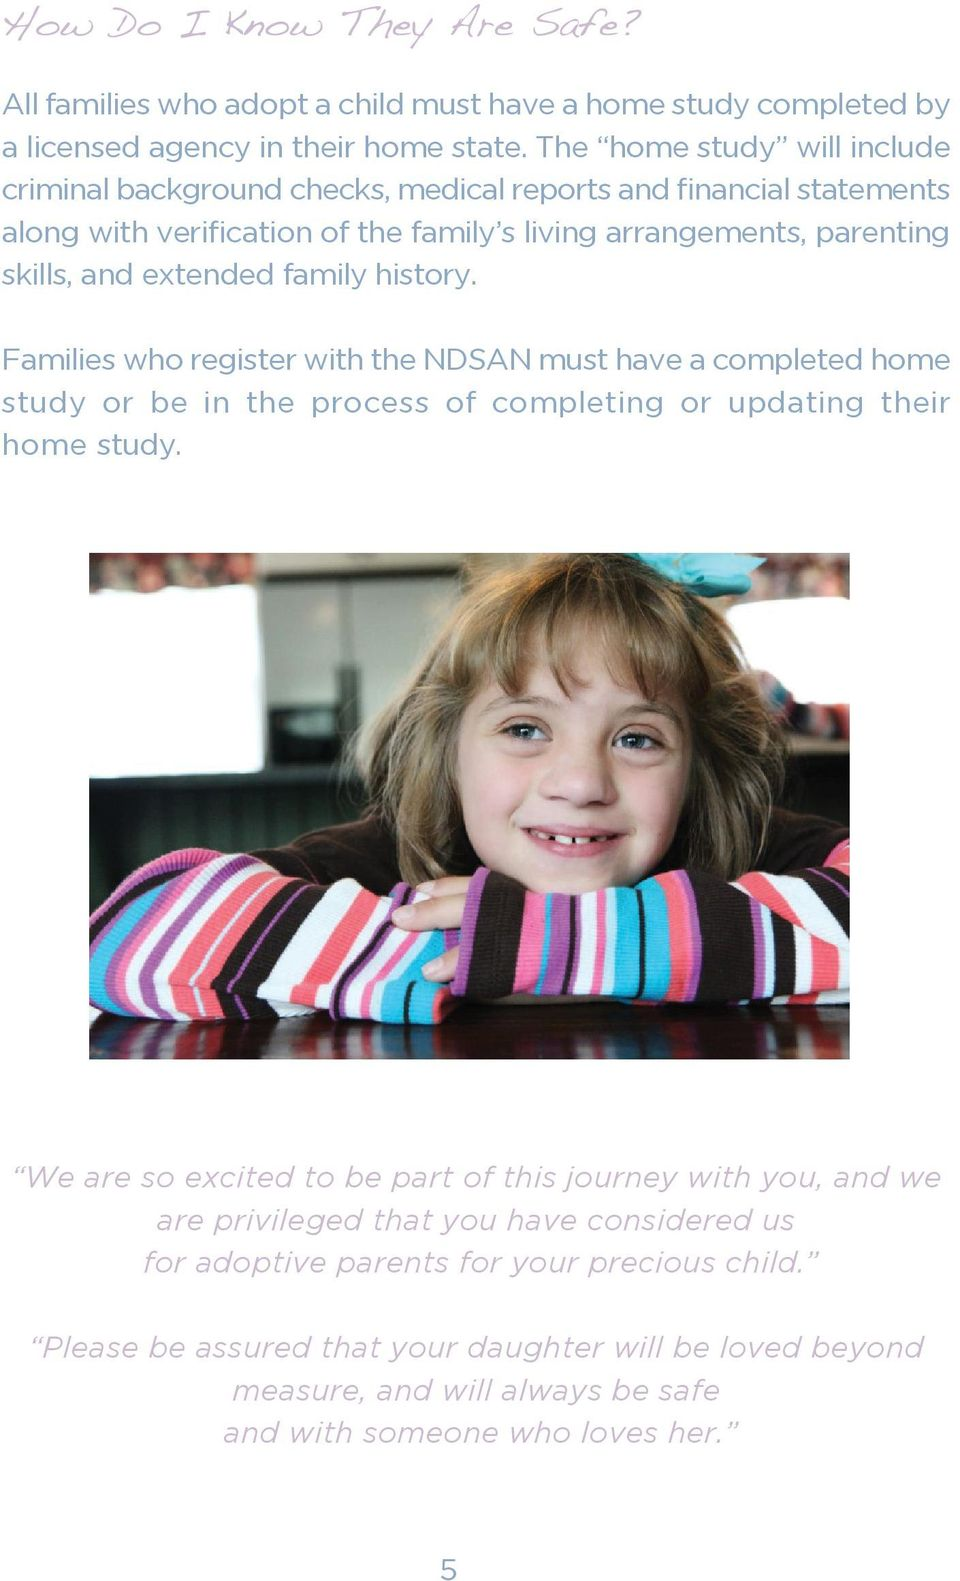 extended family history. Families who register with the NDSAN must have a completed home study or be in the process of completing or updating their home study.